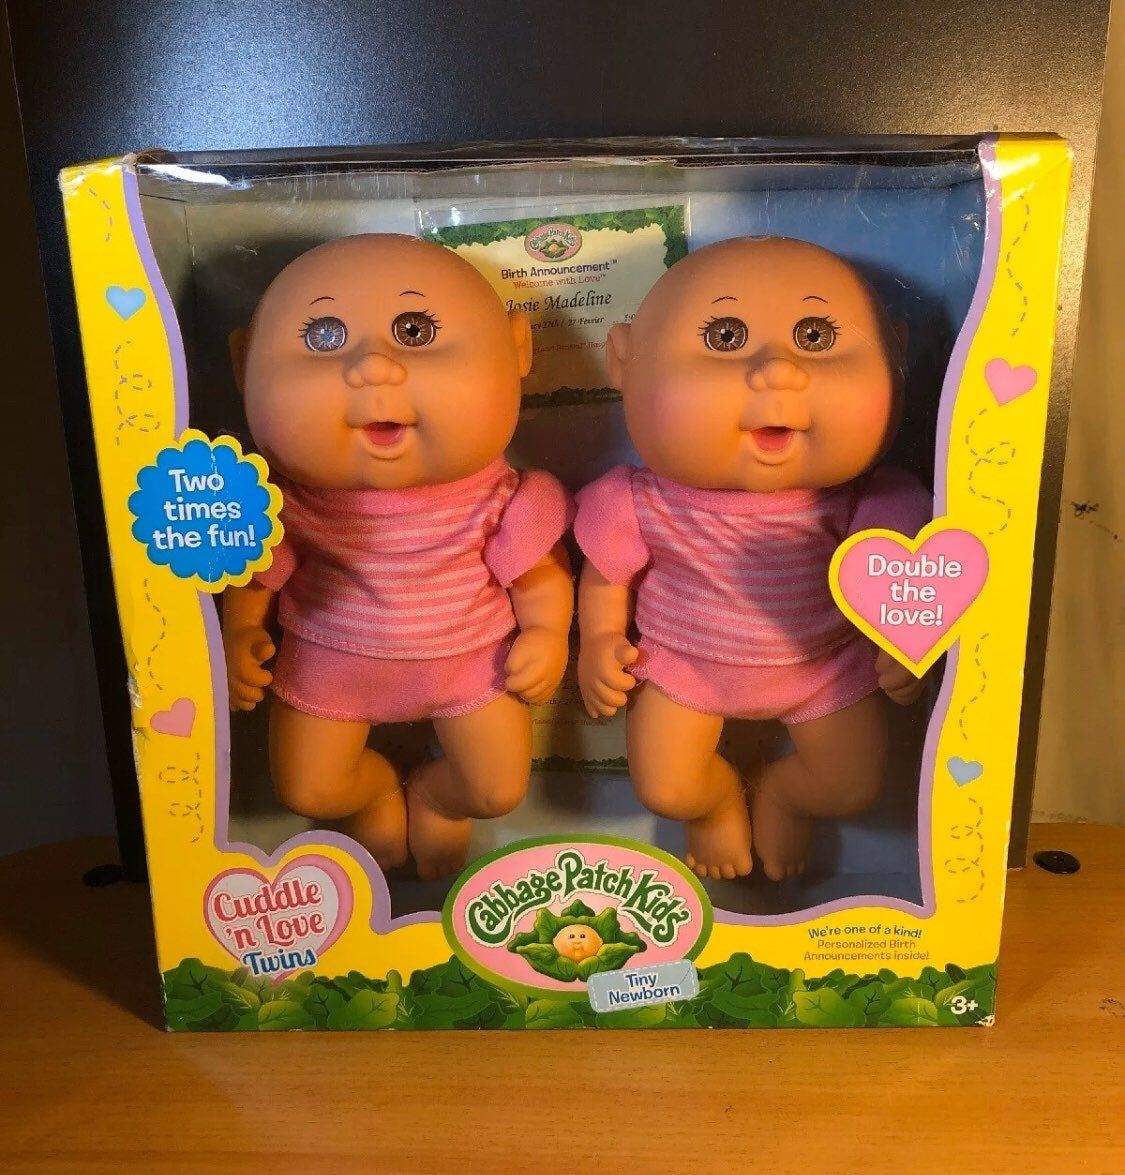 Cabbage Patch Cuddle N Love Tiny Newborn Twins Brown Eyes New Doll Baby Scuffs On Packaging See Photo Cabbage Patch Kids Dolls Cabbage Patch Kids Newborn